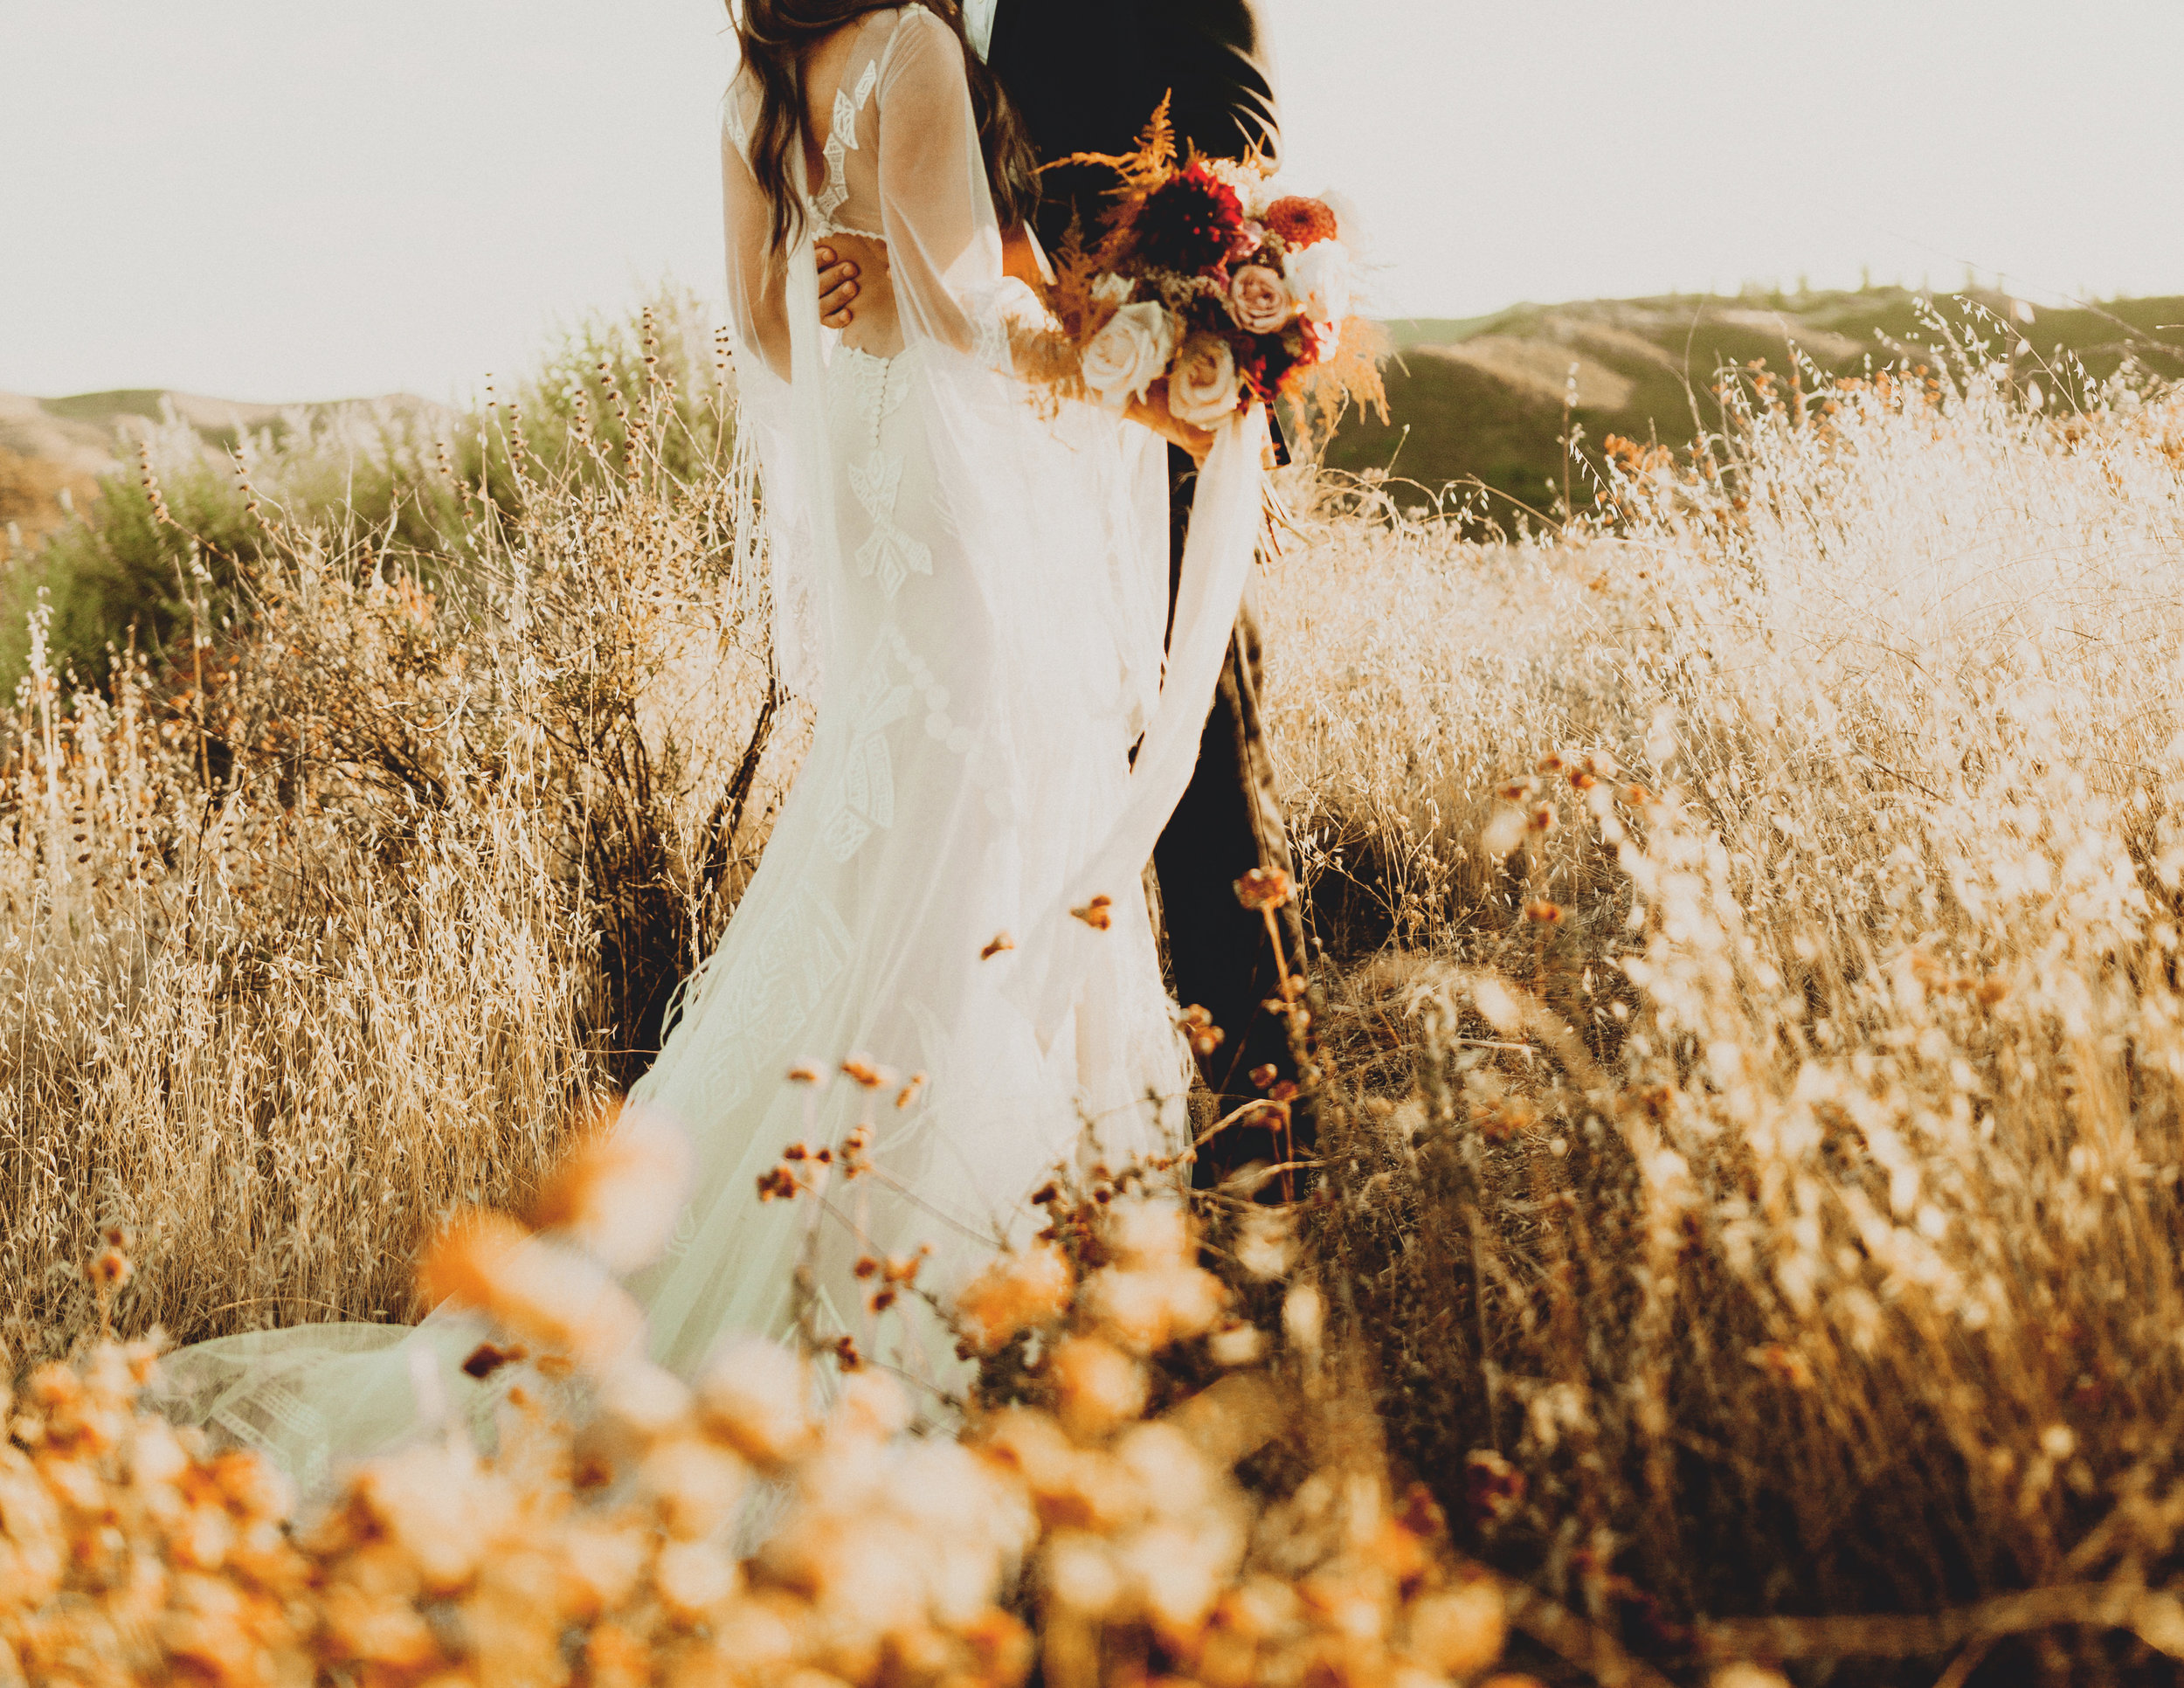 -California_Elopement_NellyCabanillas_Photography4975 copy.jpg